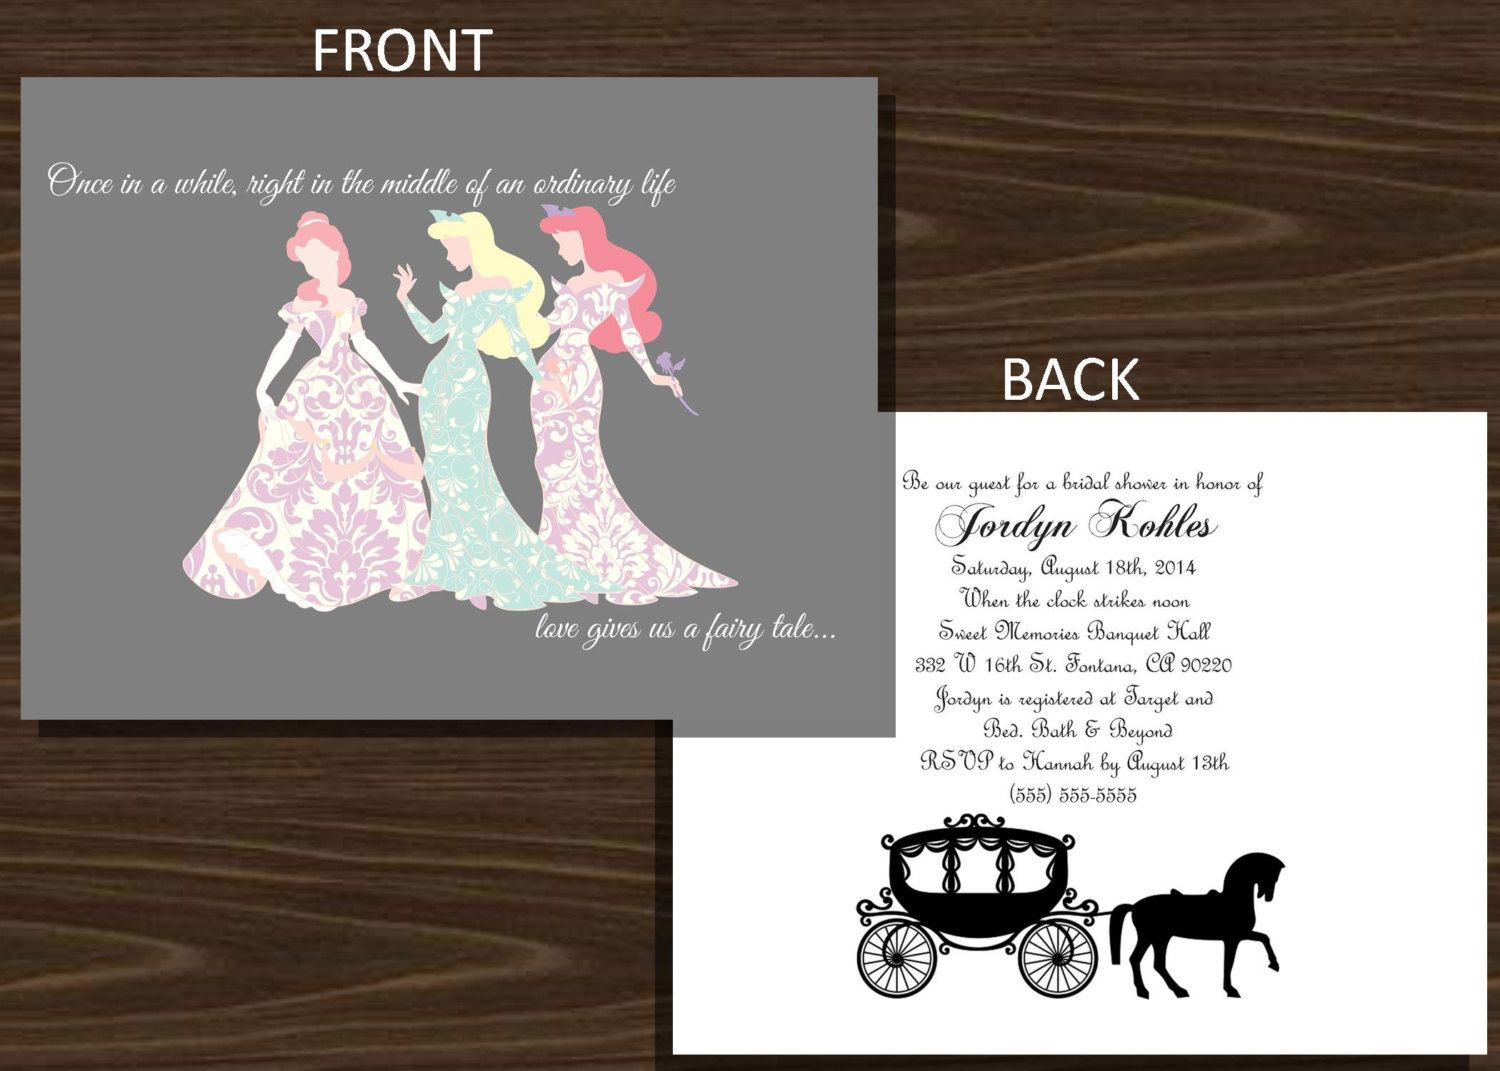 fairytale bridal shower invitation wording%0A Disney Princesses doublesiided  Silhouette Bridal Shower Invitation   x    by NhelyDesigns